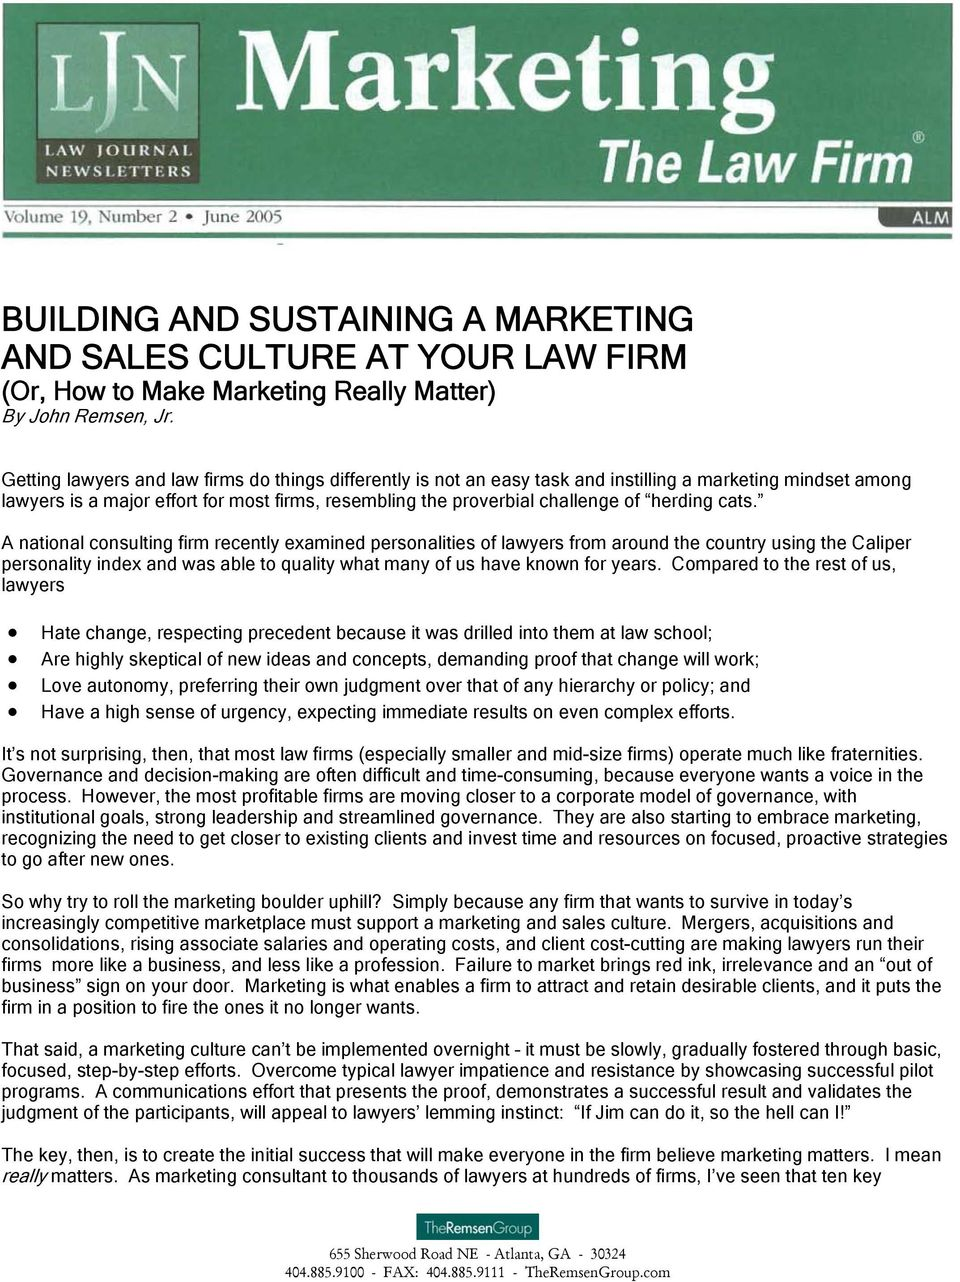 A national consulting firm recently examined personalities of lawyers from around the country using the Caliper personality index and was able to quality what many of us have known for years.